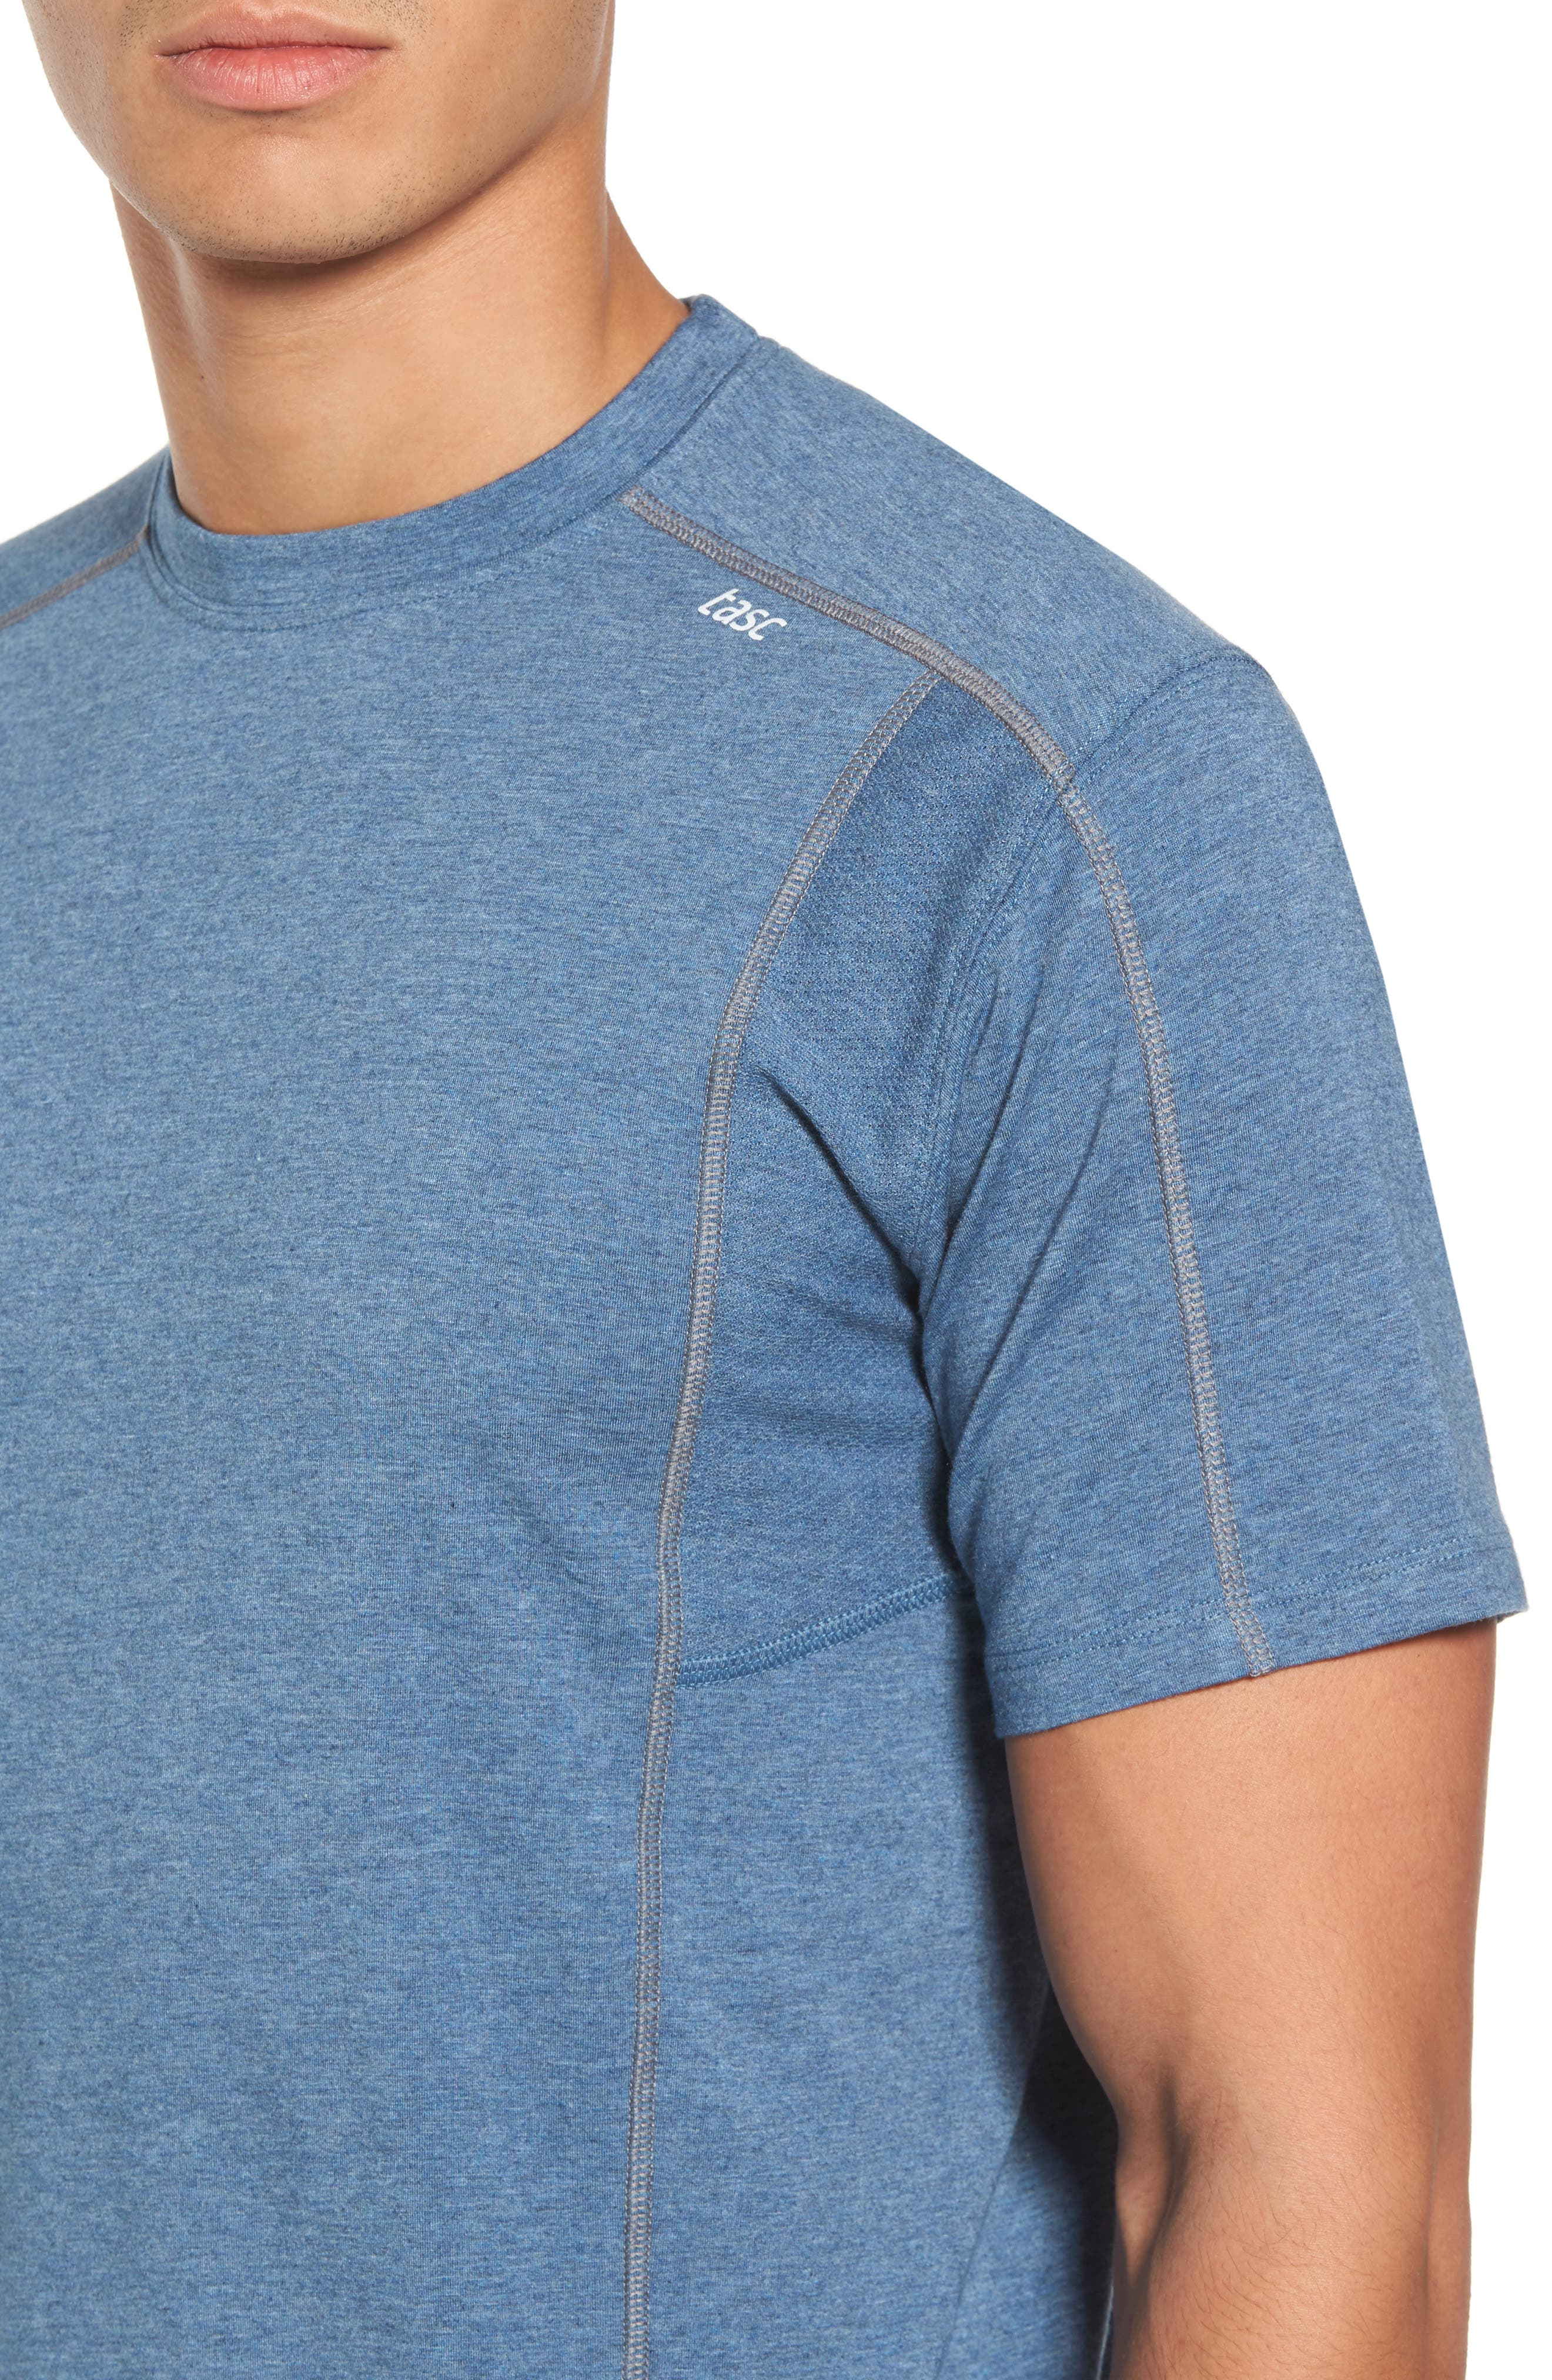 TASC PERFORMANCE, Charge Semi-Fitted T-Shirt, Alternate thumbnail 4, color, INDIGO HEATHER